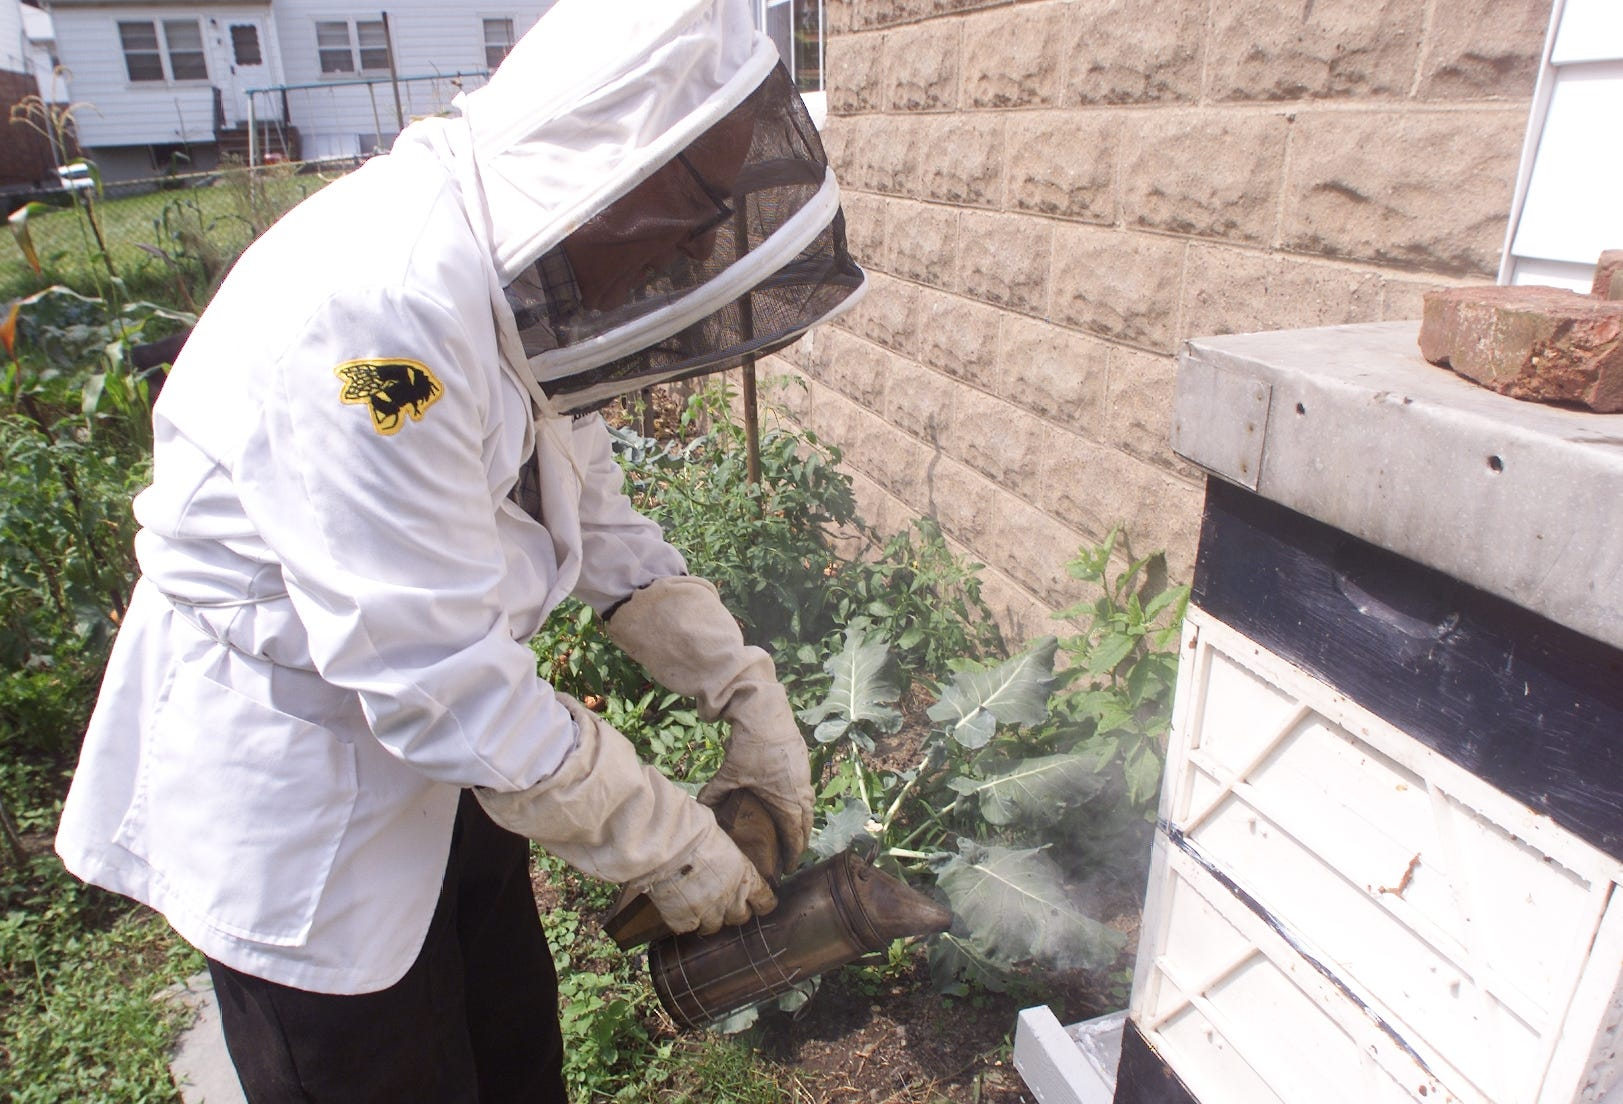 Paterson Beekeeper Tom Fuscaldo. Tom Fuscaldo Keeping His Bees In His  Paterson Backyard.